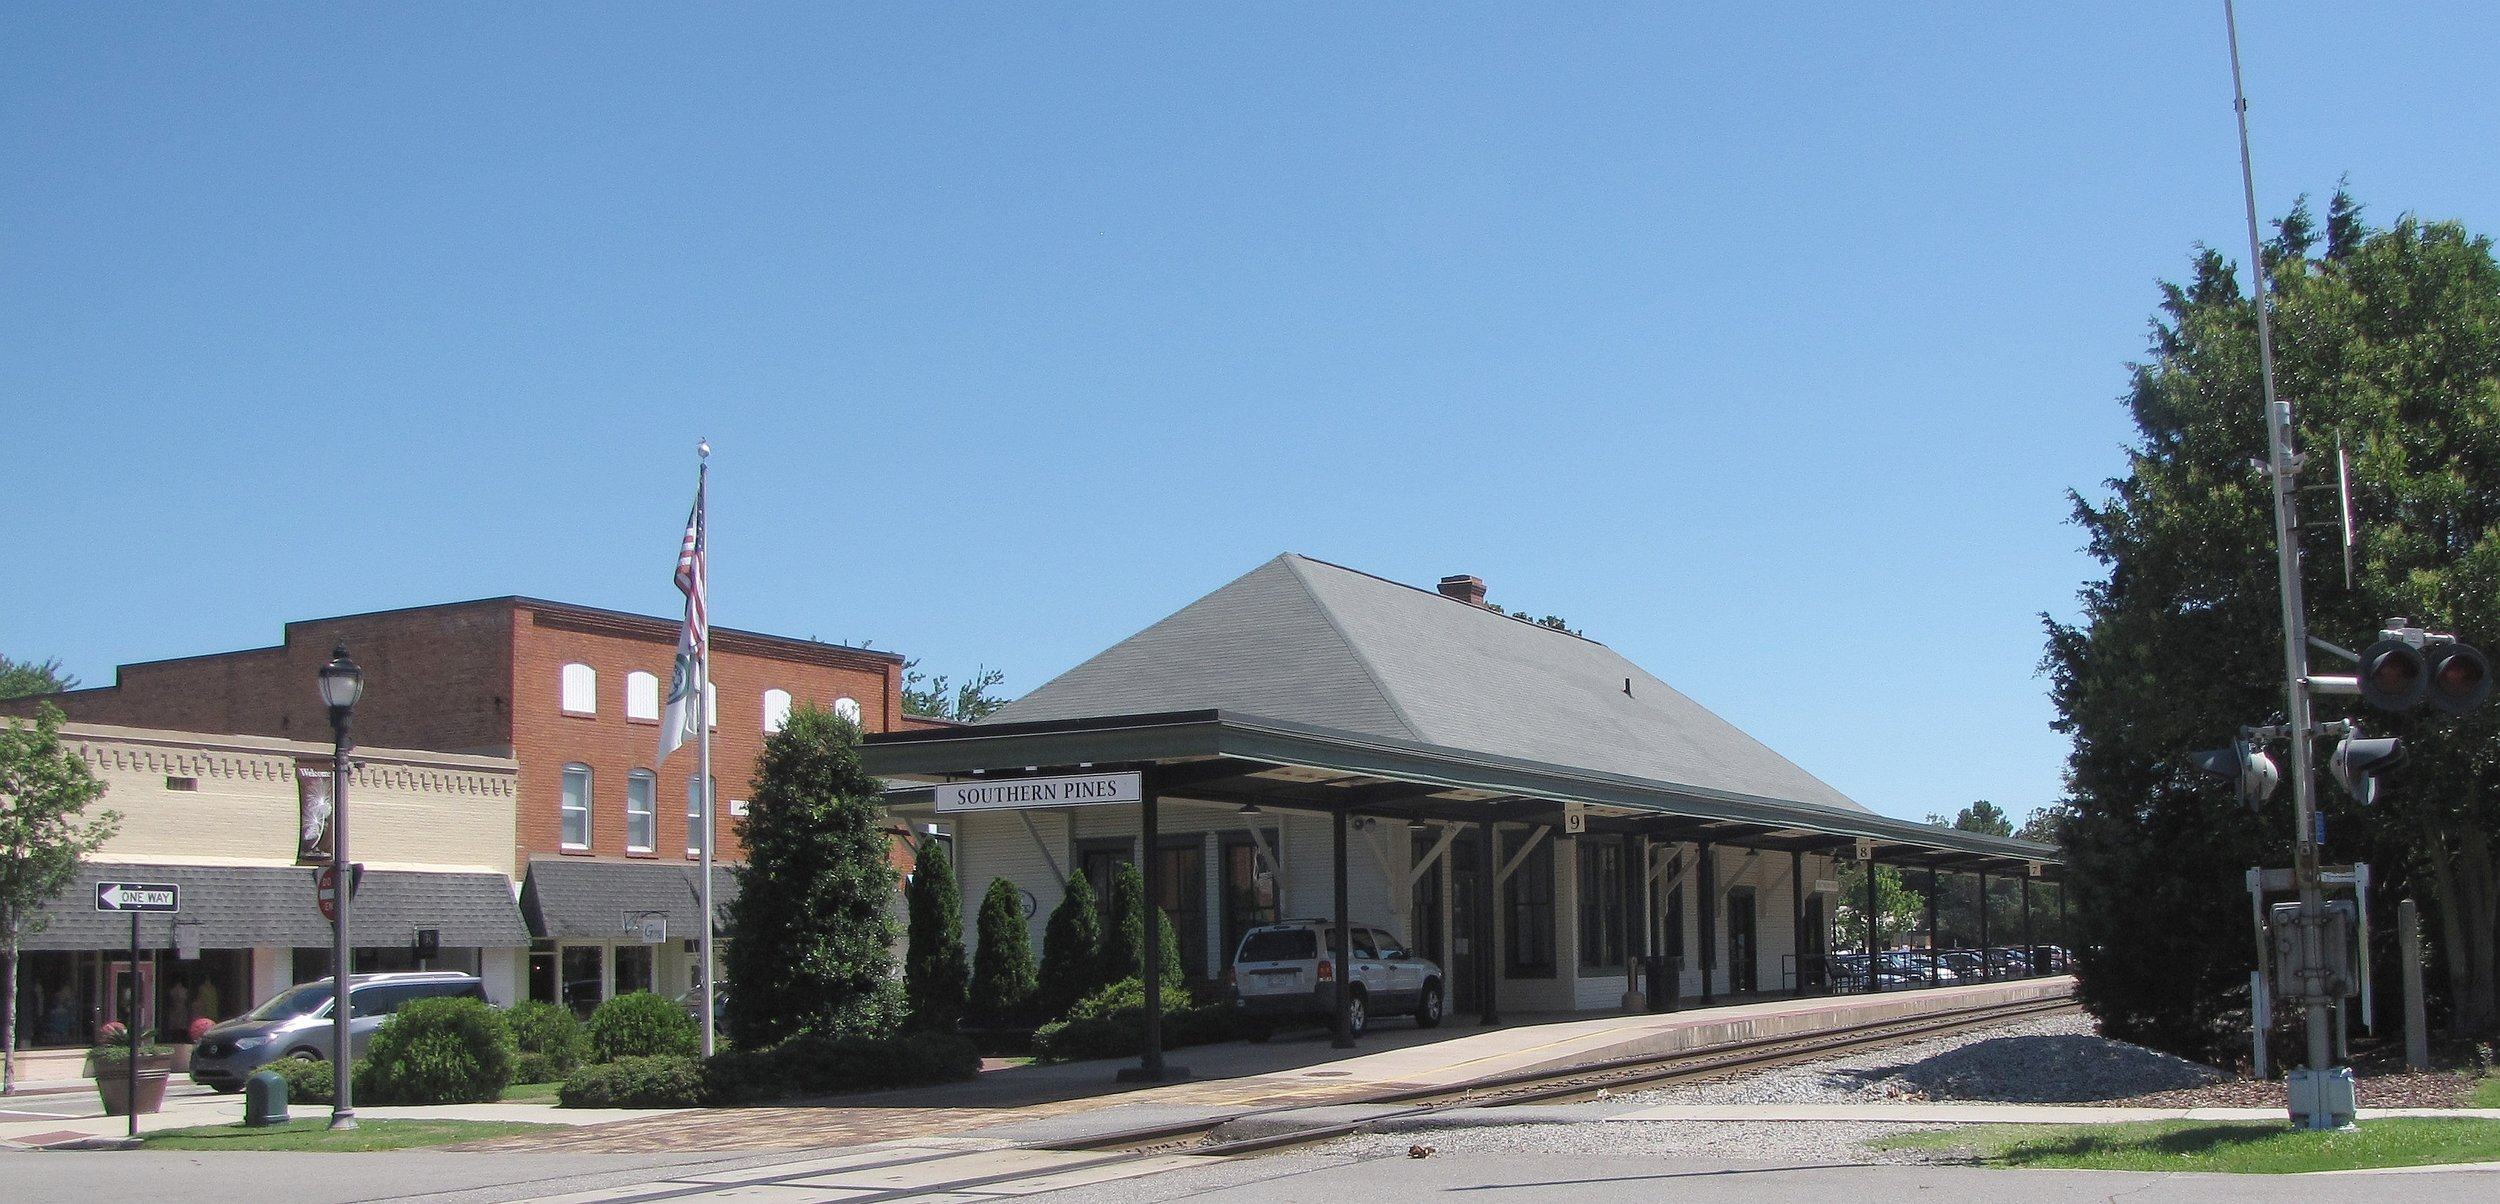 Southern Pines Train Station